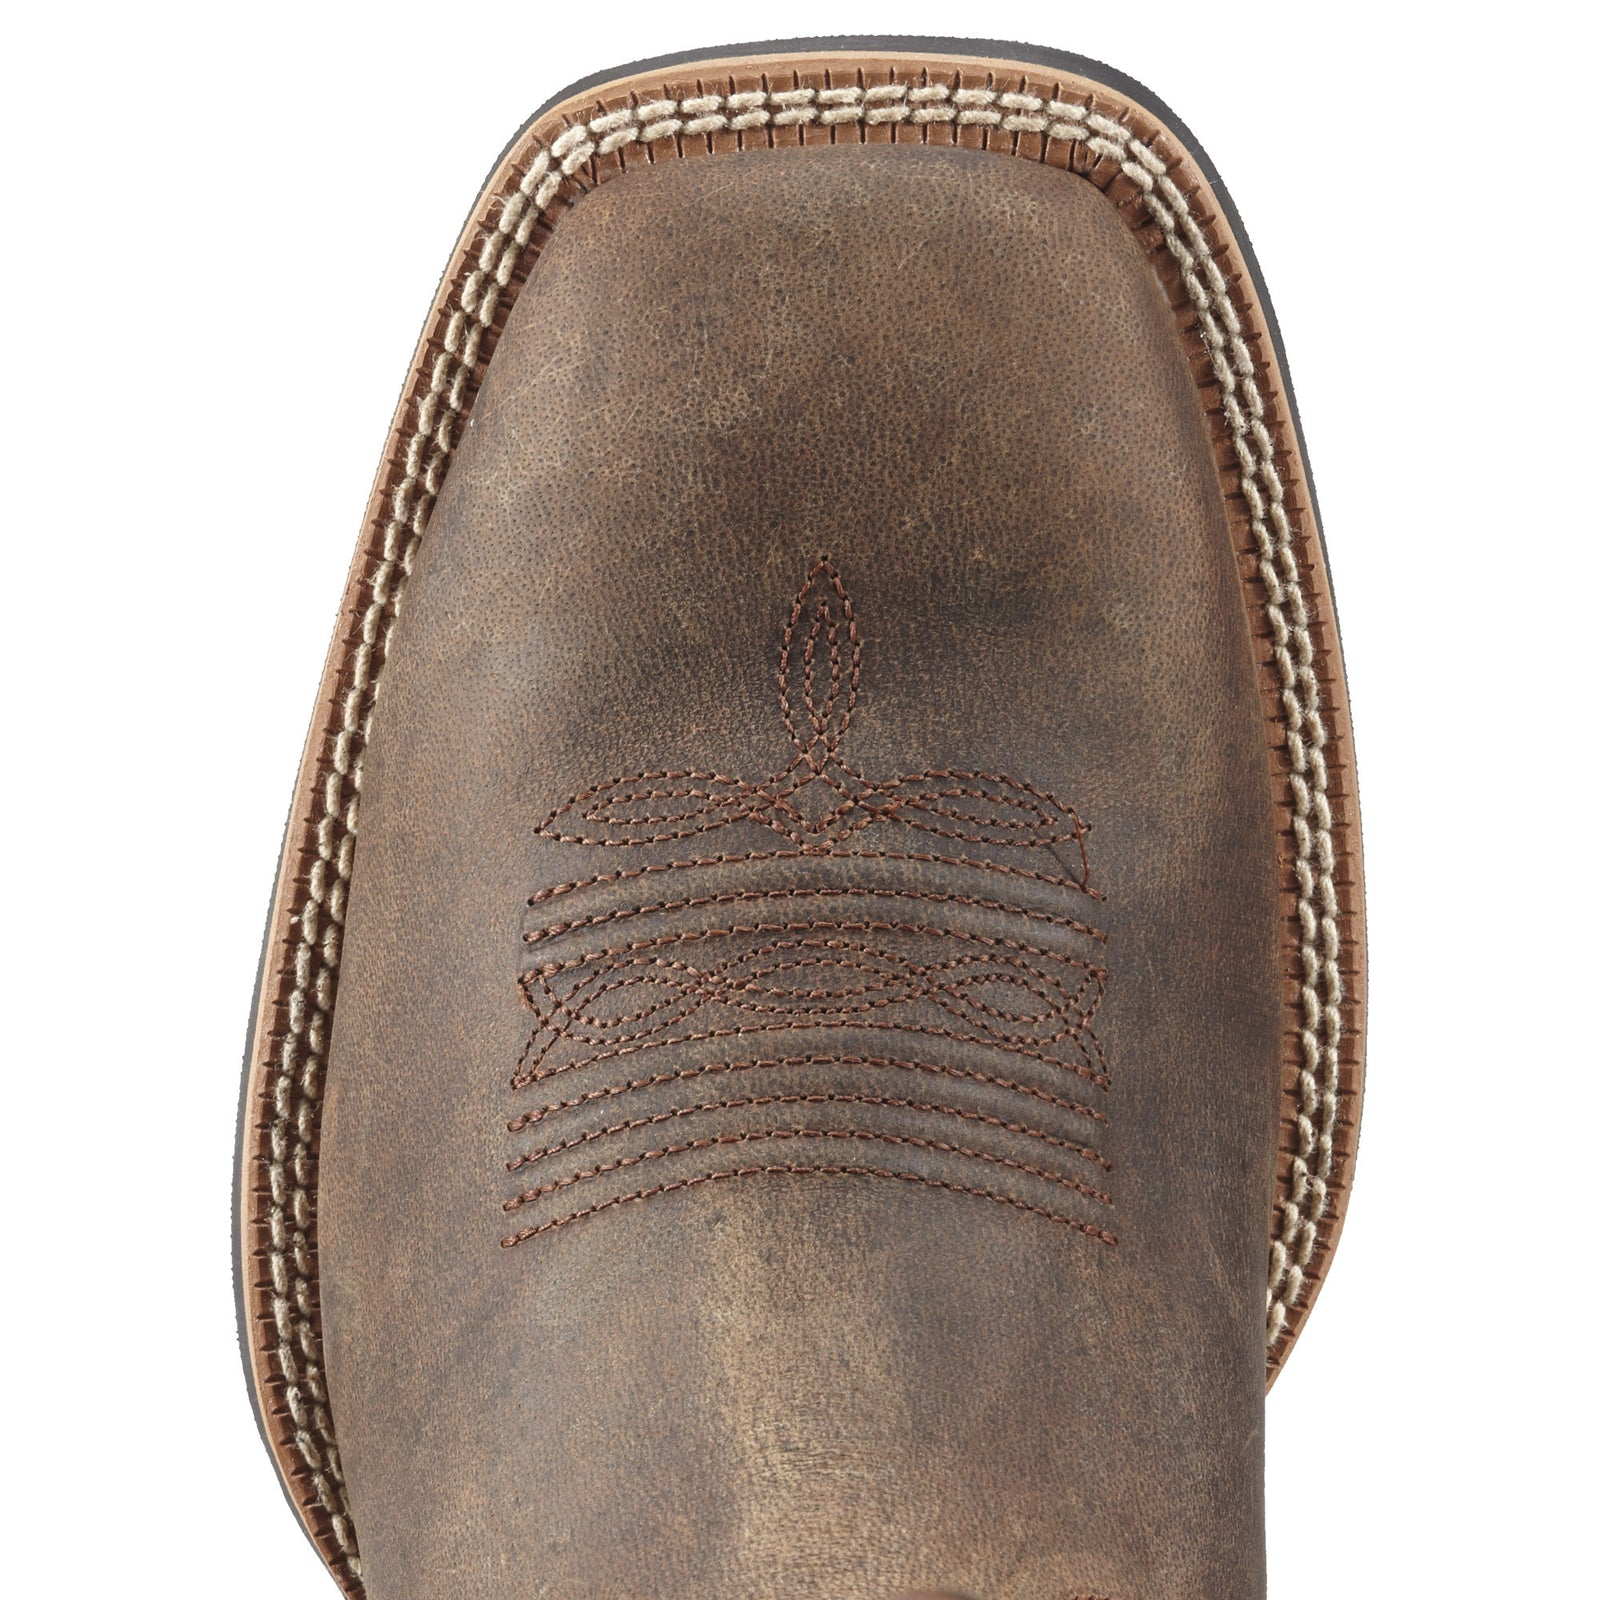 Ariat Men's Sport Wide Square Toe Distressed Brown - VaqueroBoots.com - 2